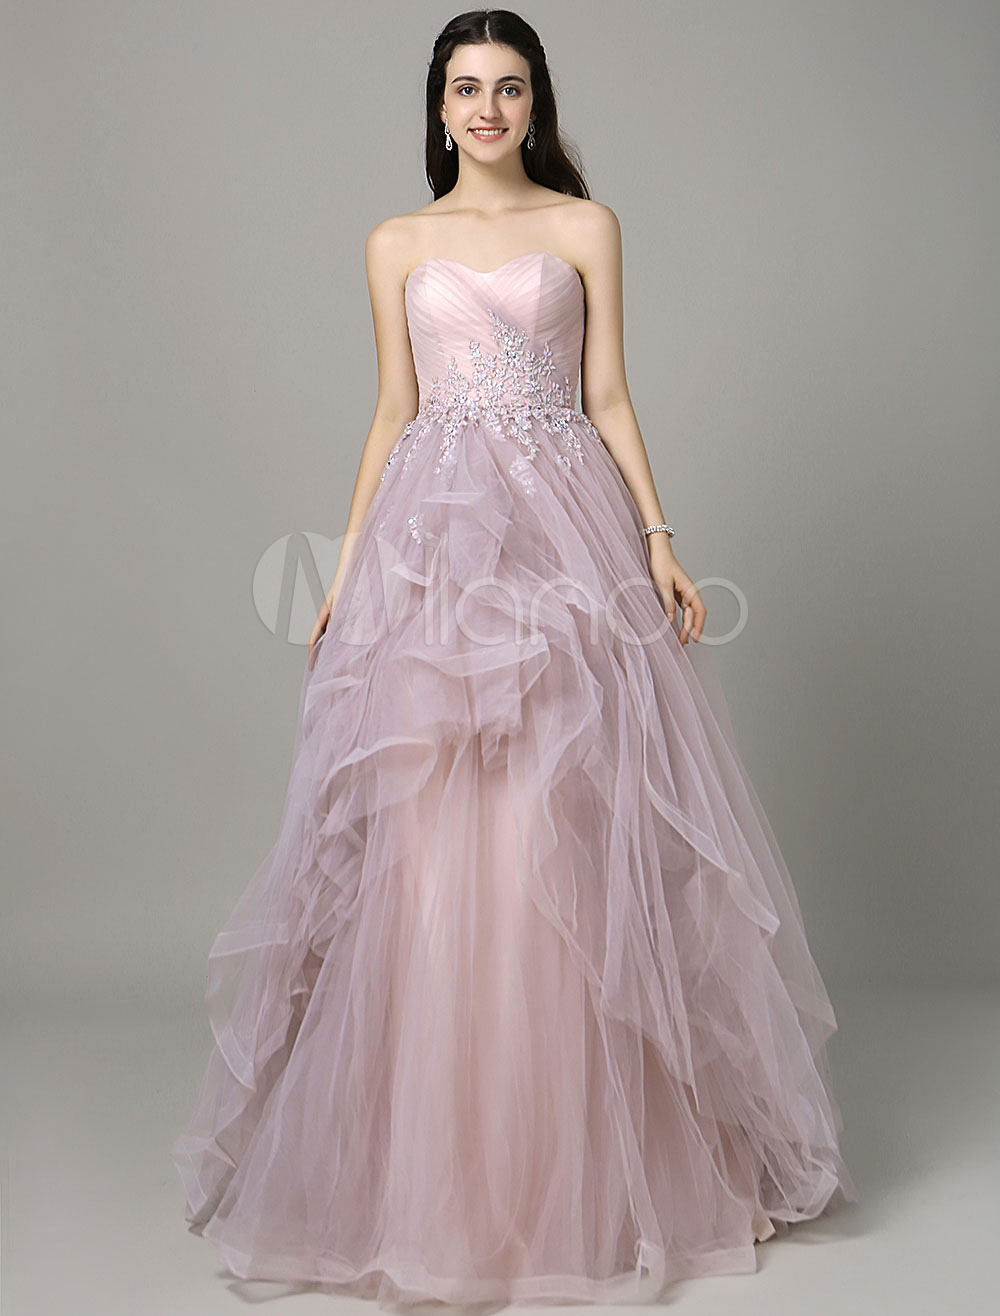 Backless Prom Dress Lace Applique A-Line Pleated Sweetheart Floor-Length Quinceanera Dress